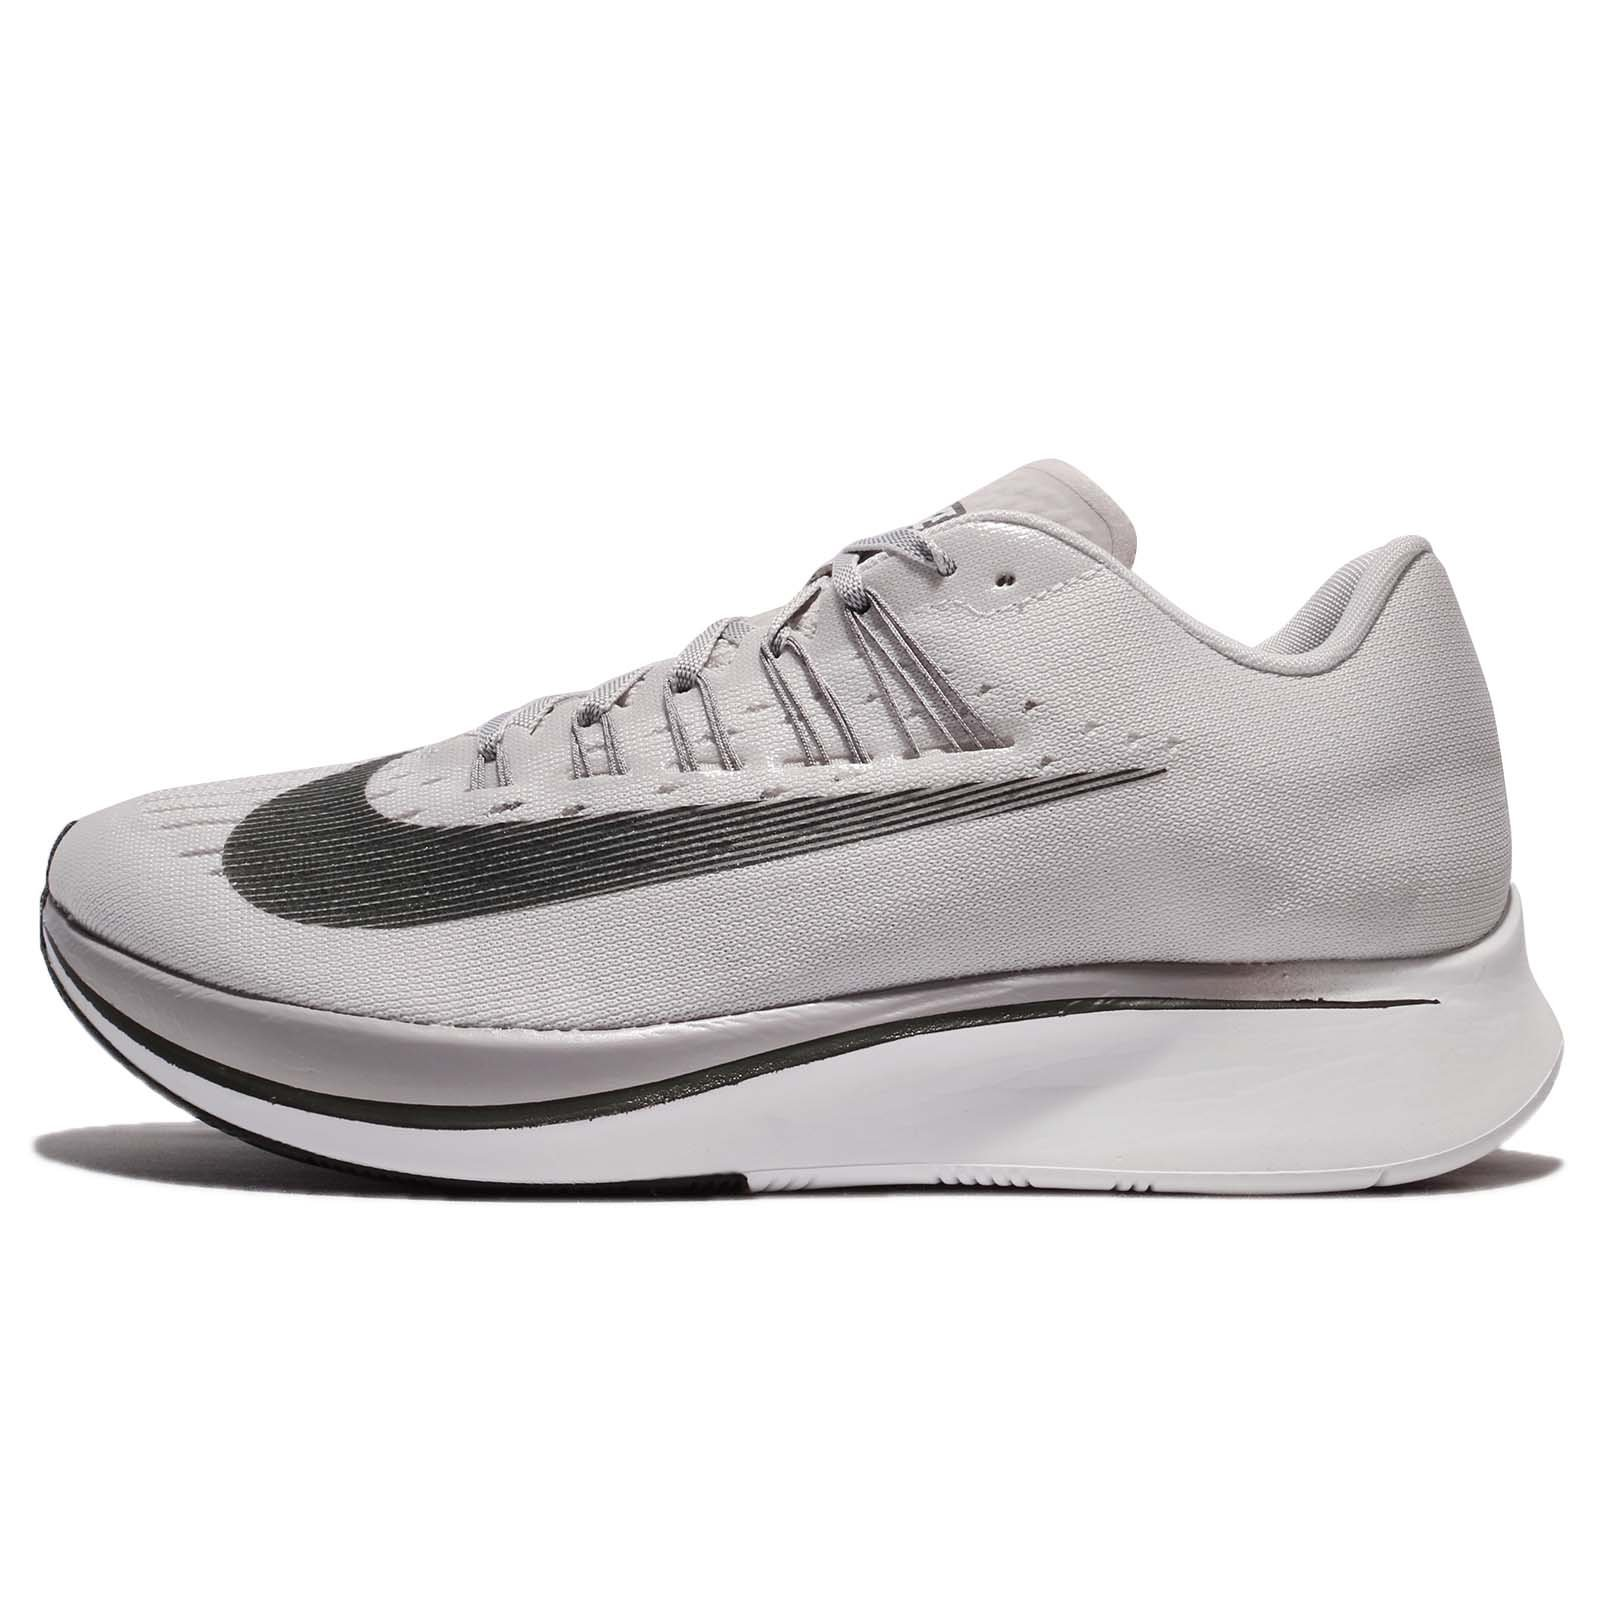 f5264cfe12b2 Galleon - Nike Men s Zoom Fly Running Shoe VAST Grey Anthracite-Atmosphere  Grey 15.0